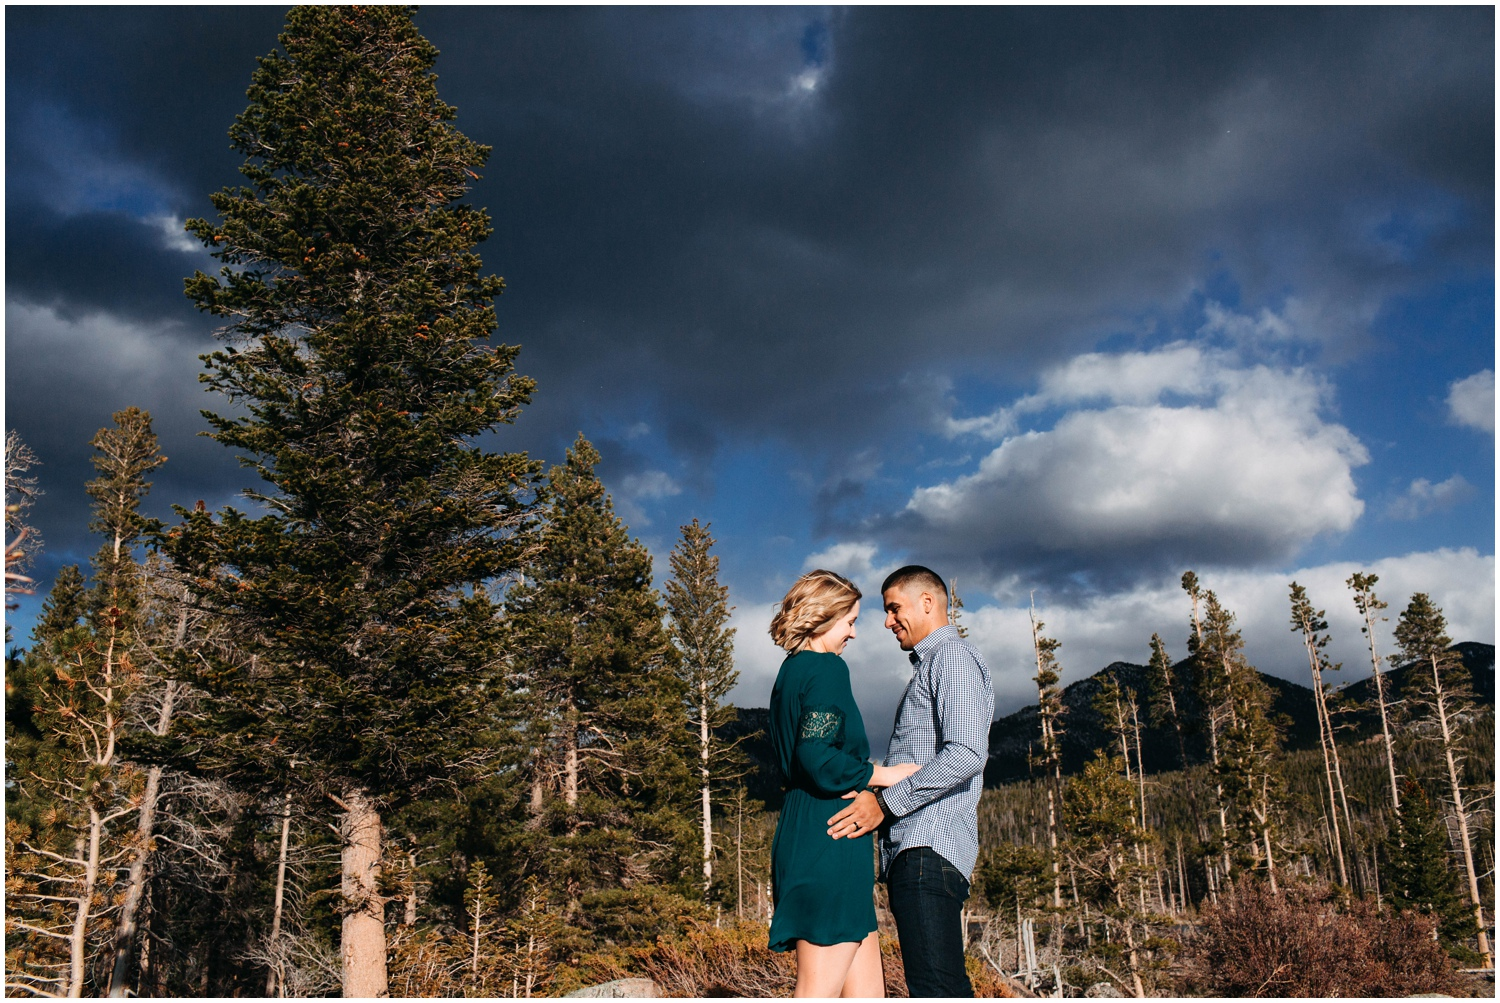 taylor_powers_best_of_2017_highlights_adventure_couple_photography_0226.jpg